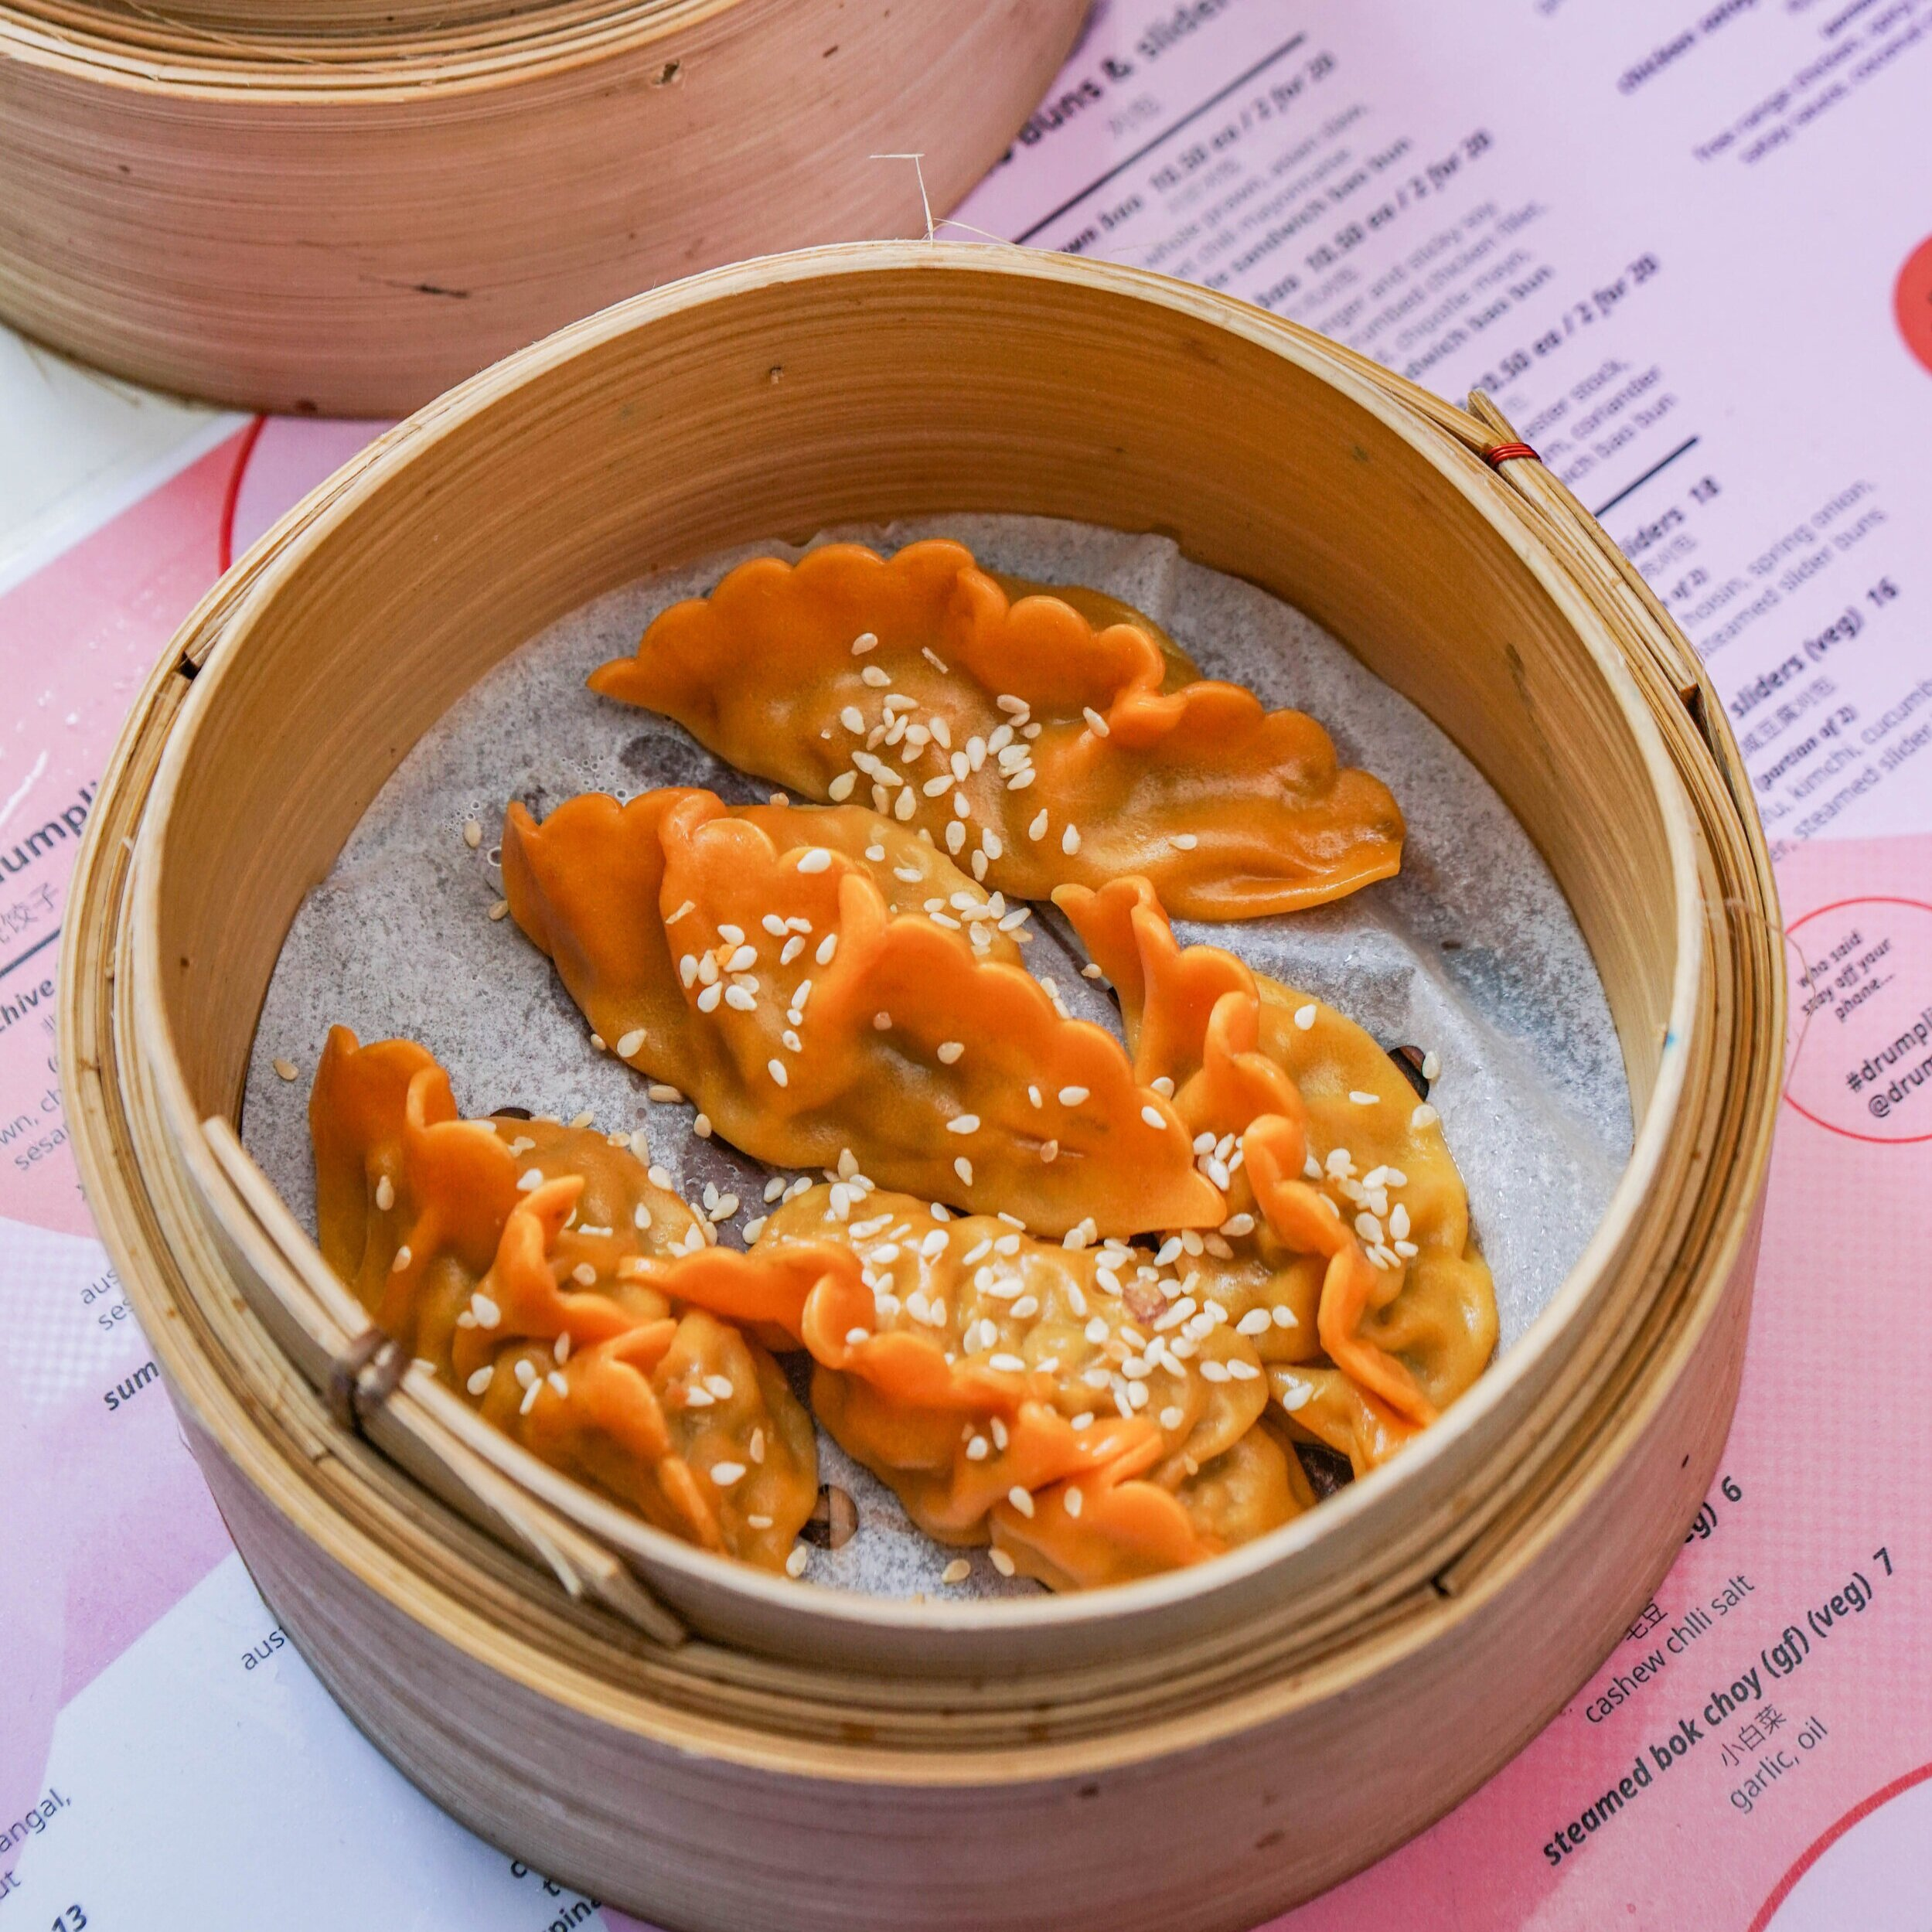 Cheeseburger Dumplings - Our Drumplings superstar. This delicious parcel is packed with fresh beef, melted cheese, pickles, mustard, and topped with sesame seeds. A must try and our most famous dumpling to date!